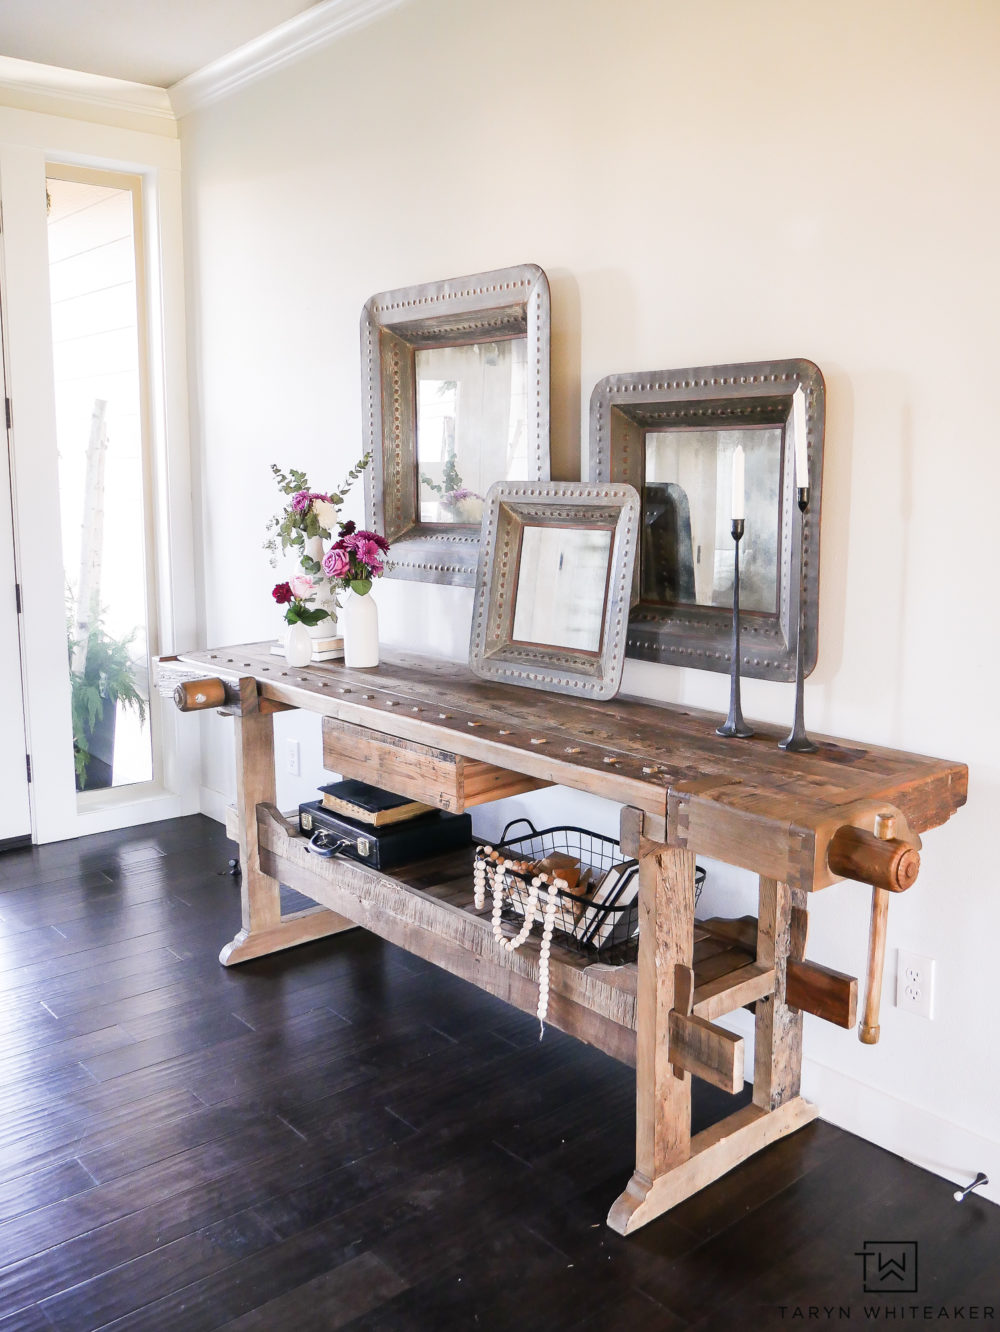 Give a welcoming look to your entry way with.a wood console table decorated with large scale items and soft fresh flowers. Mixing industrial and famine touches is a wonderful contrast.